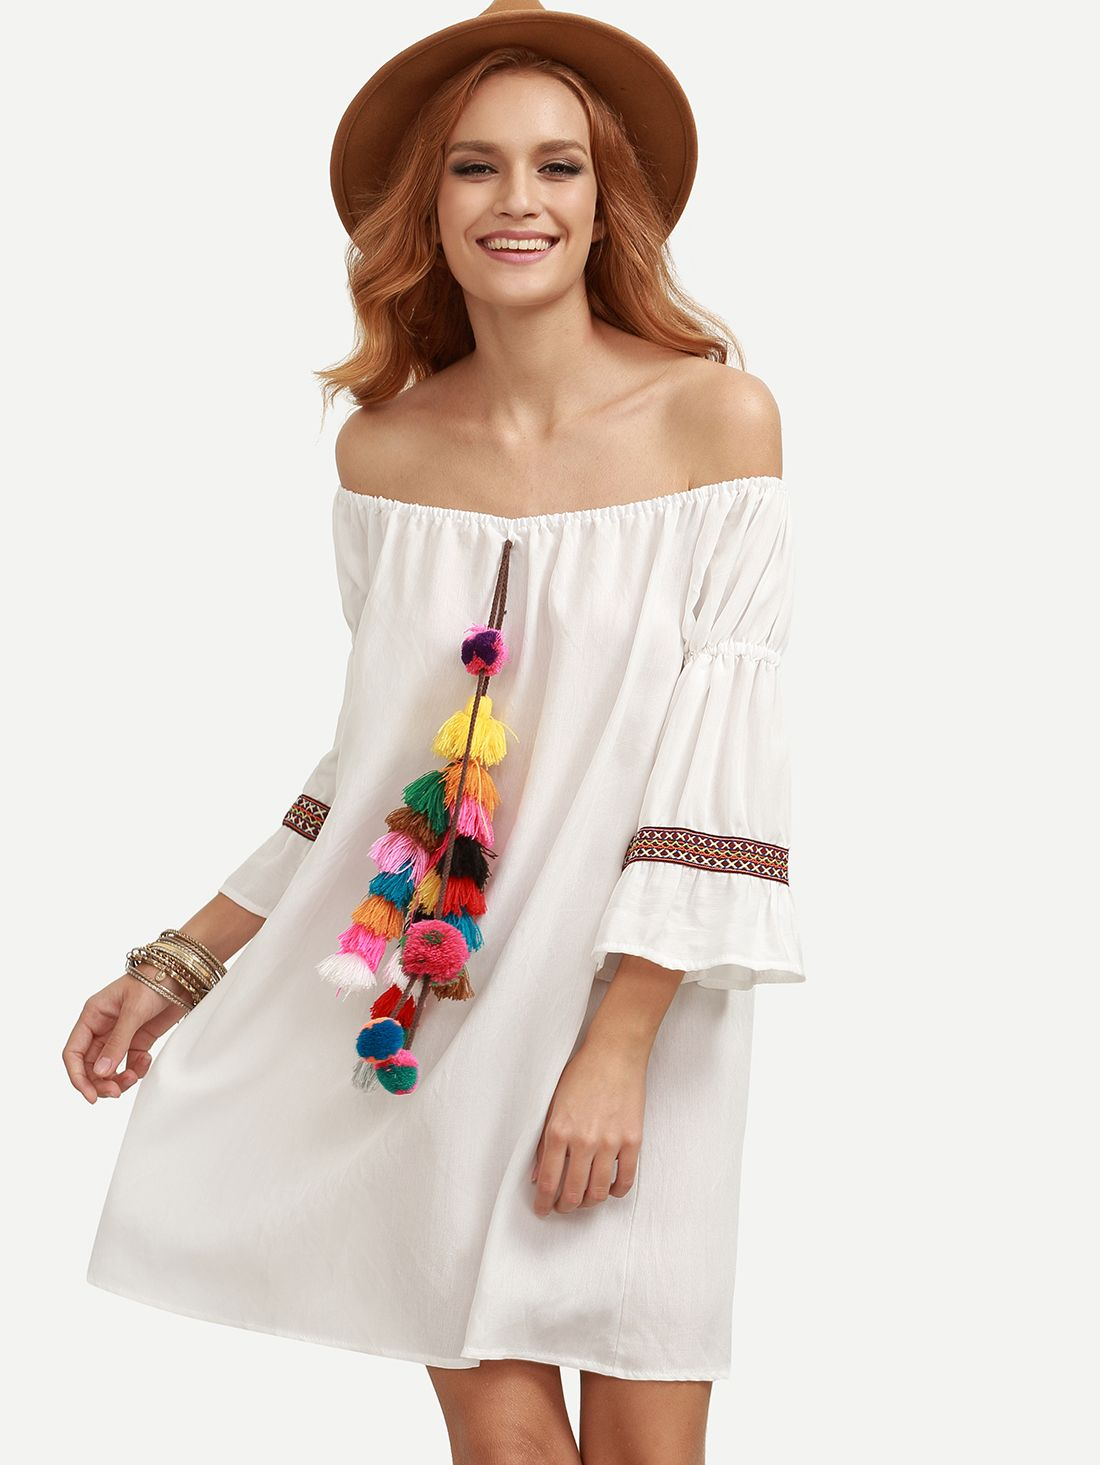 Buy it now white tassel and woven tape embellished off the shoulder